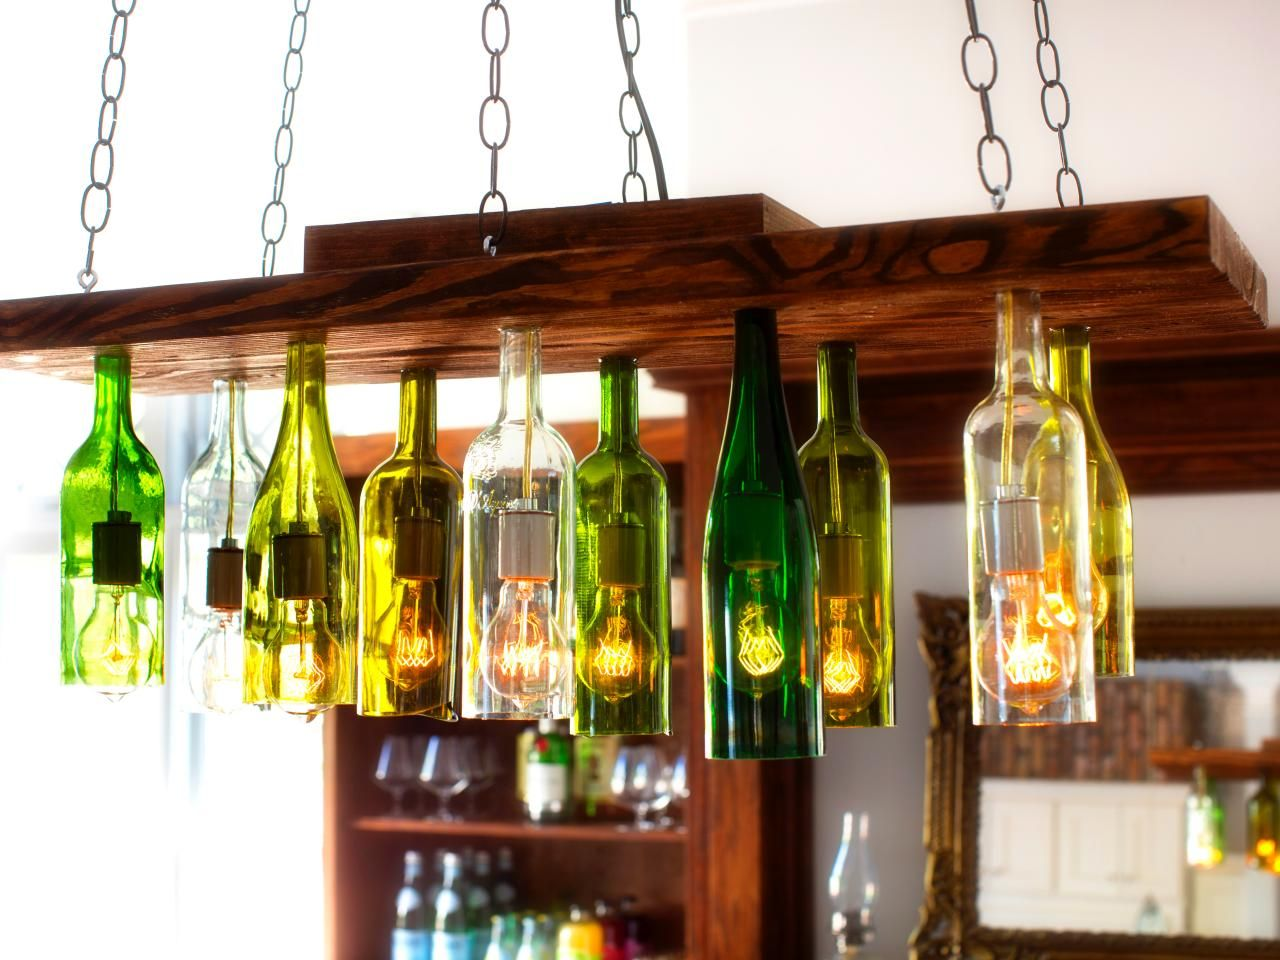 Diy chandeliers that will light up your day chandelier made from upcycled glass bottles solutioingenieria Images